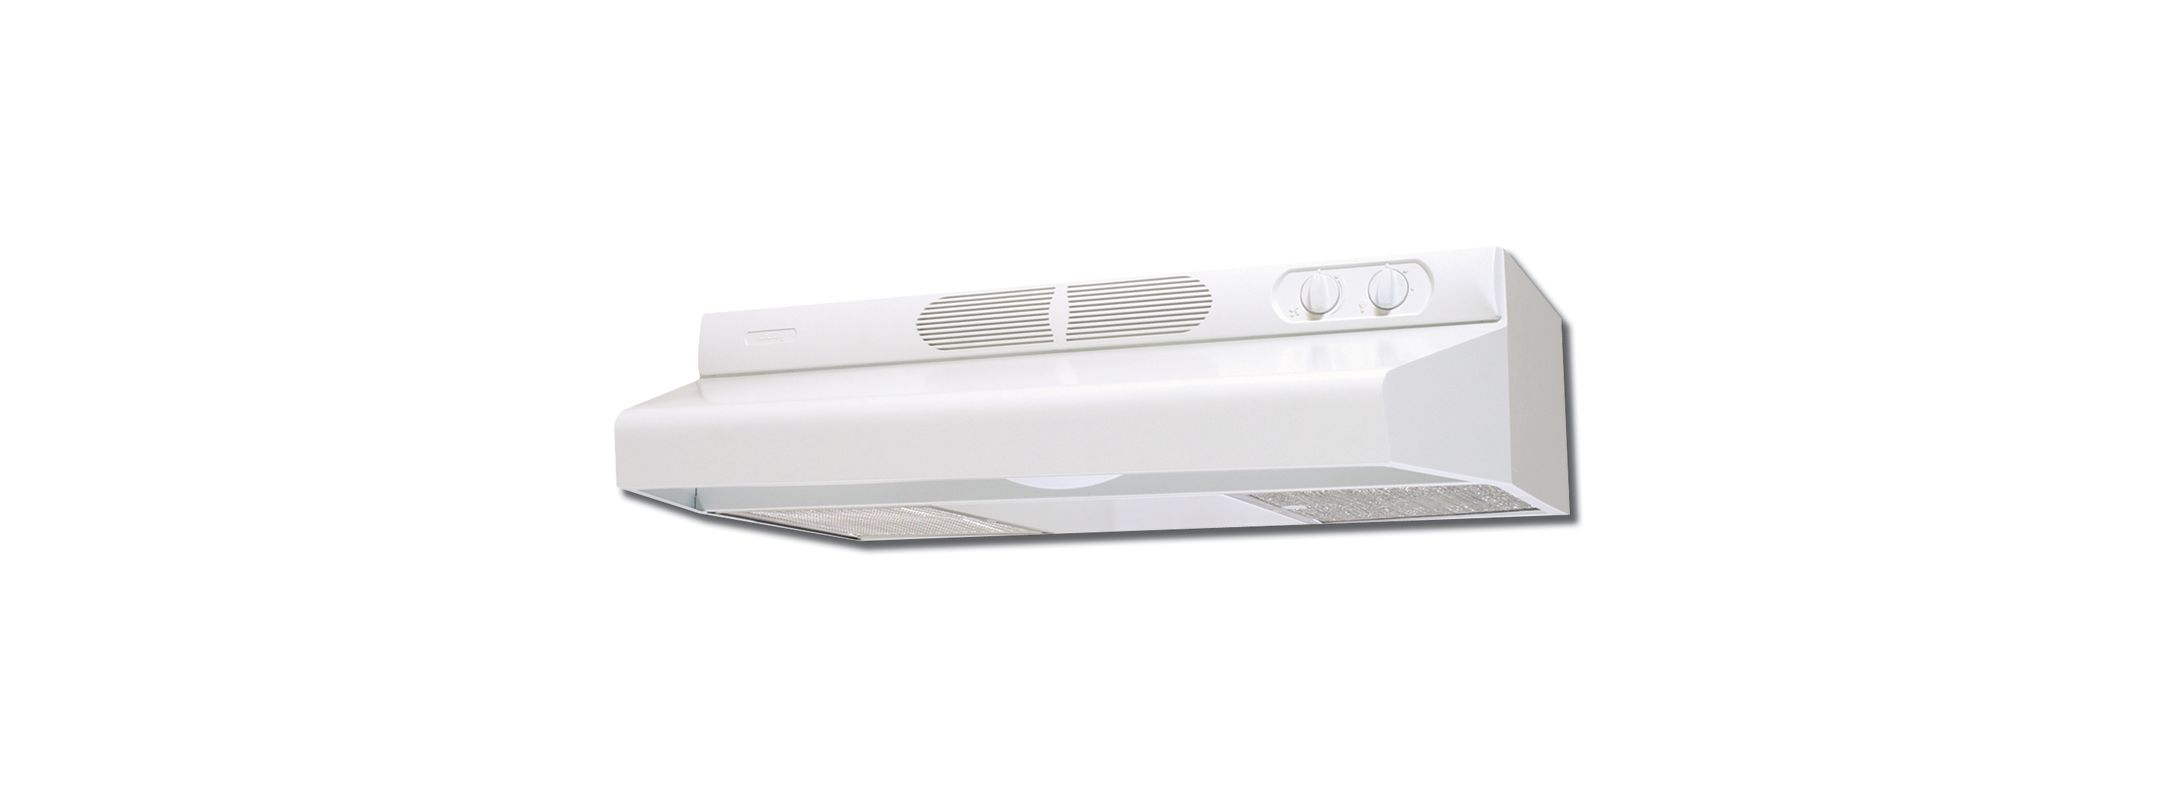 Air King Esdq1303 White Energy Star 30 Quot 270 Cfm 3 Speed